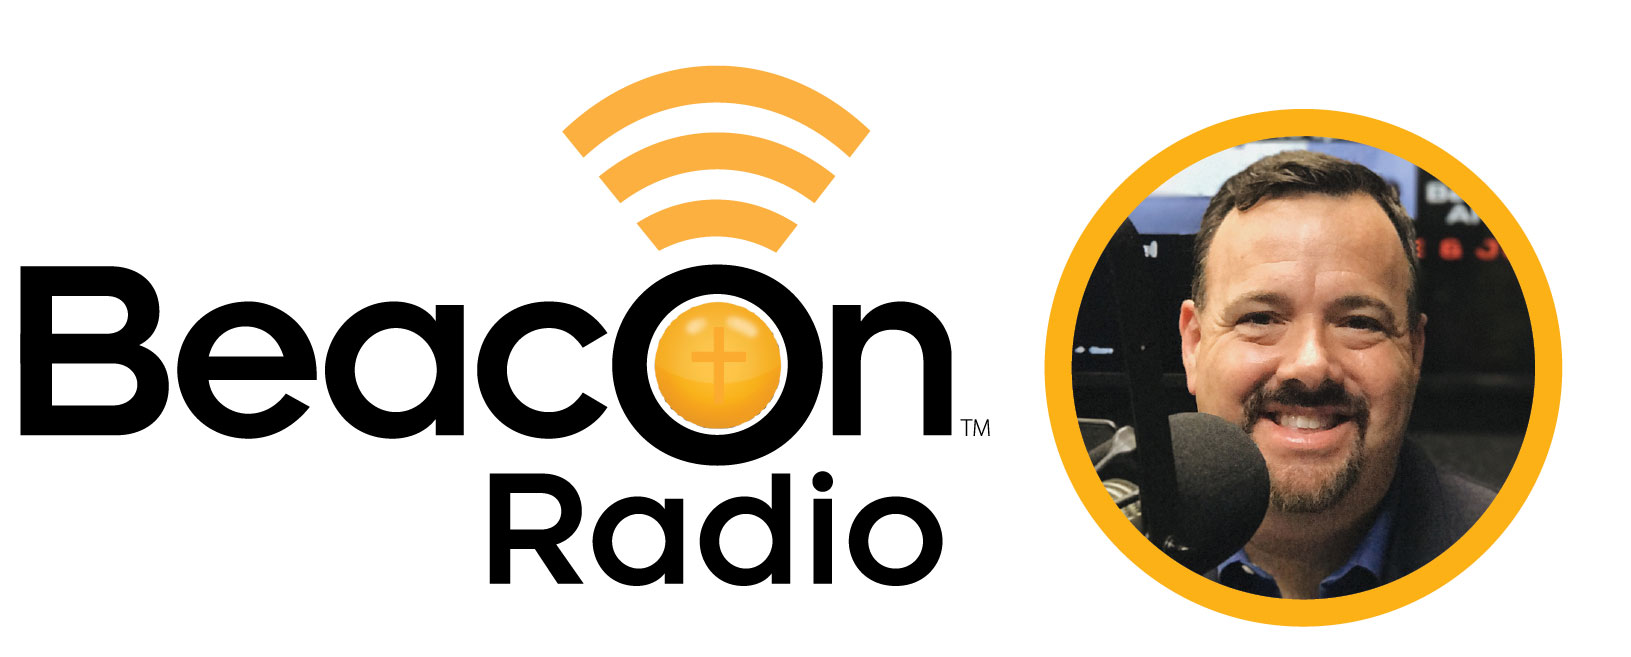 Steve Teel with Beacon Radio